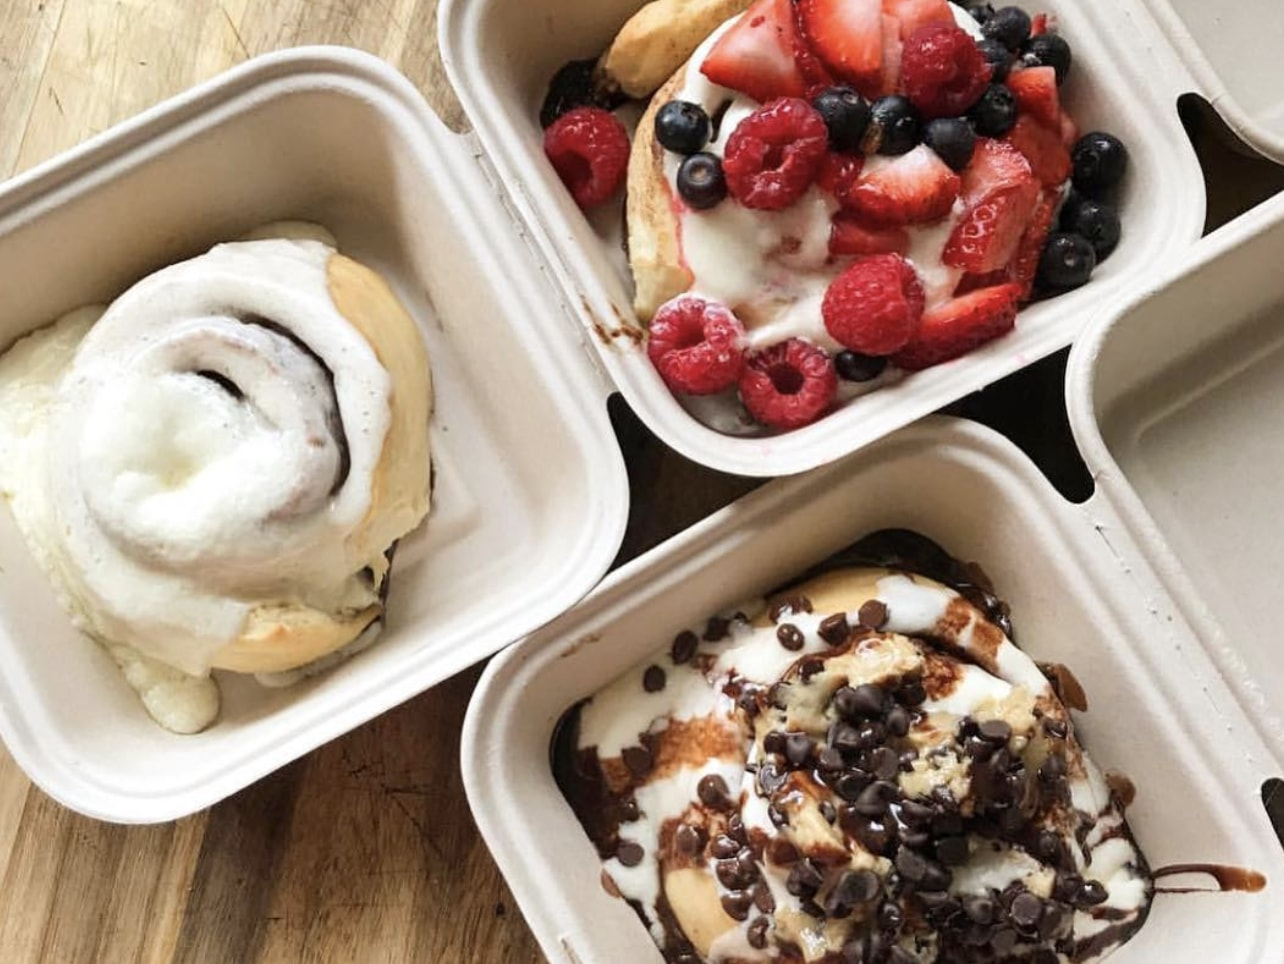 Gourmet Vegan Bakery Chain To Open 136 New Outlets Across The US